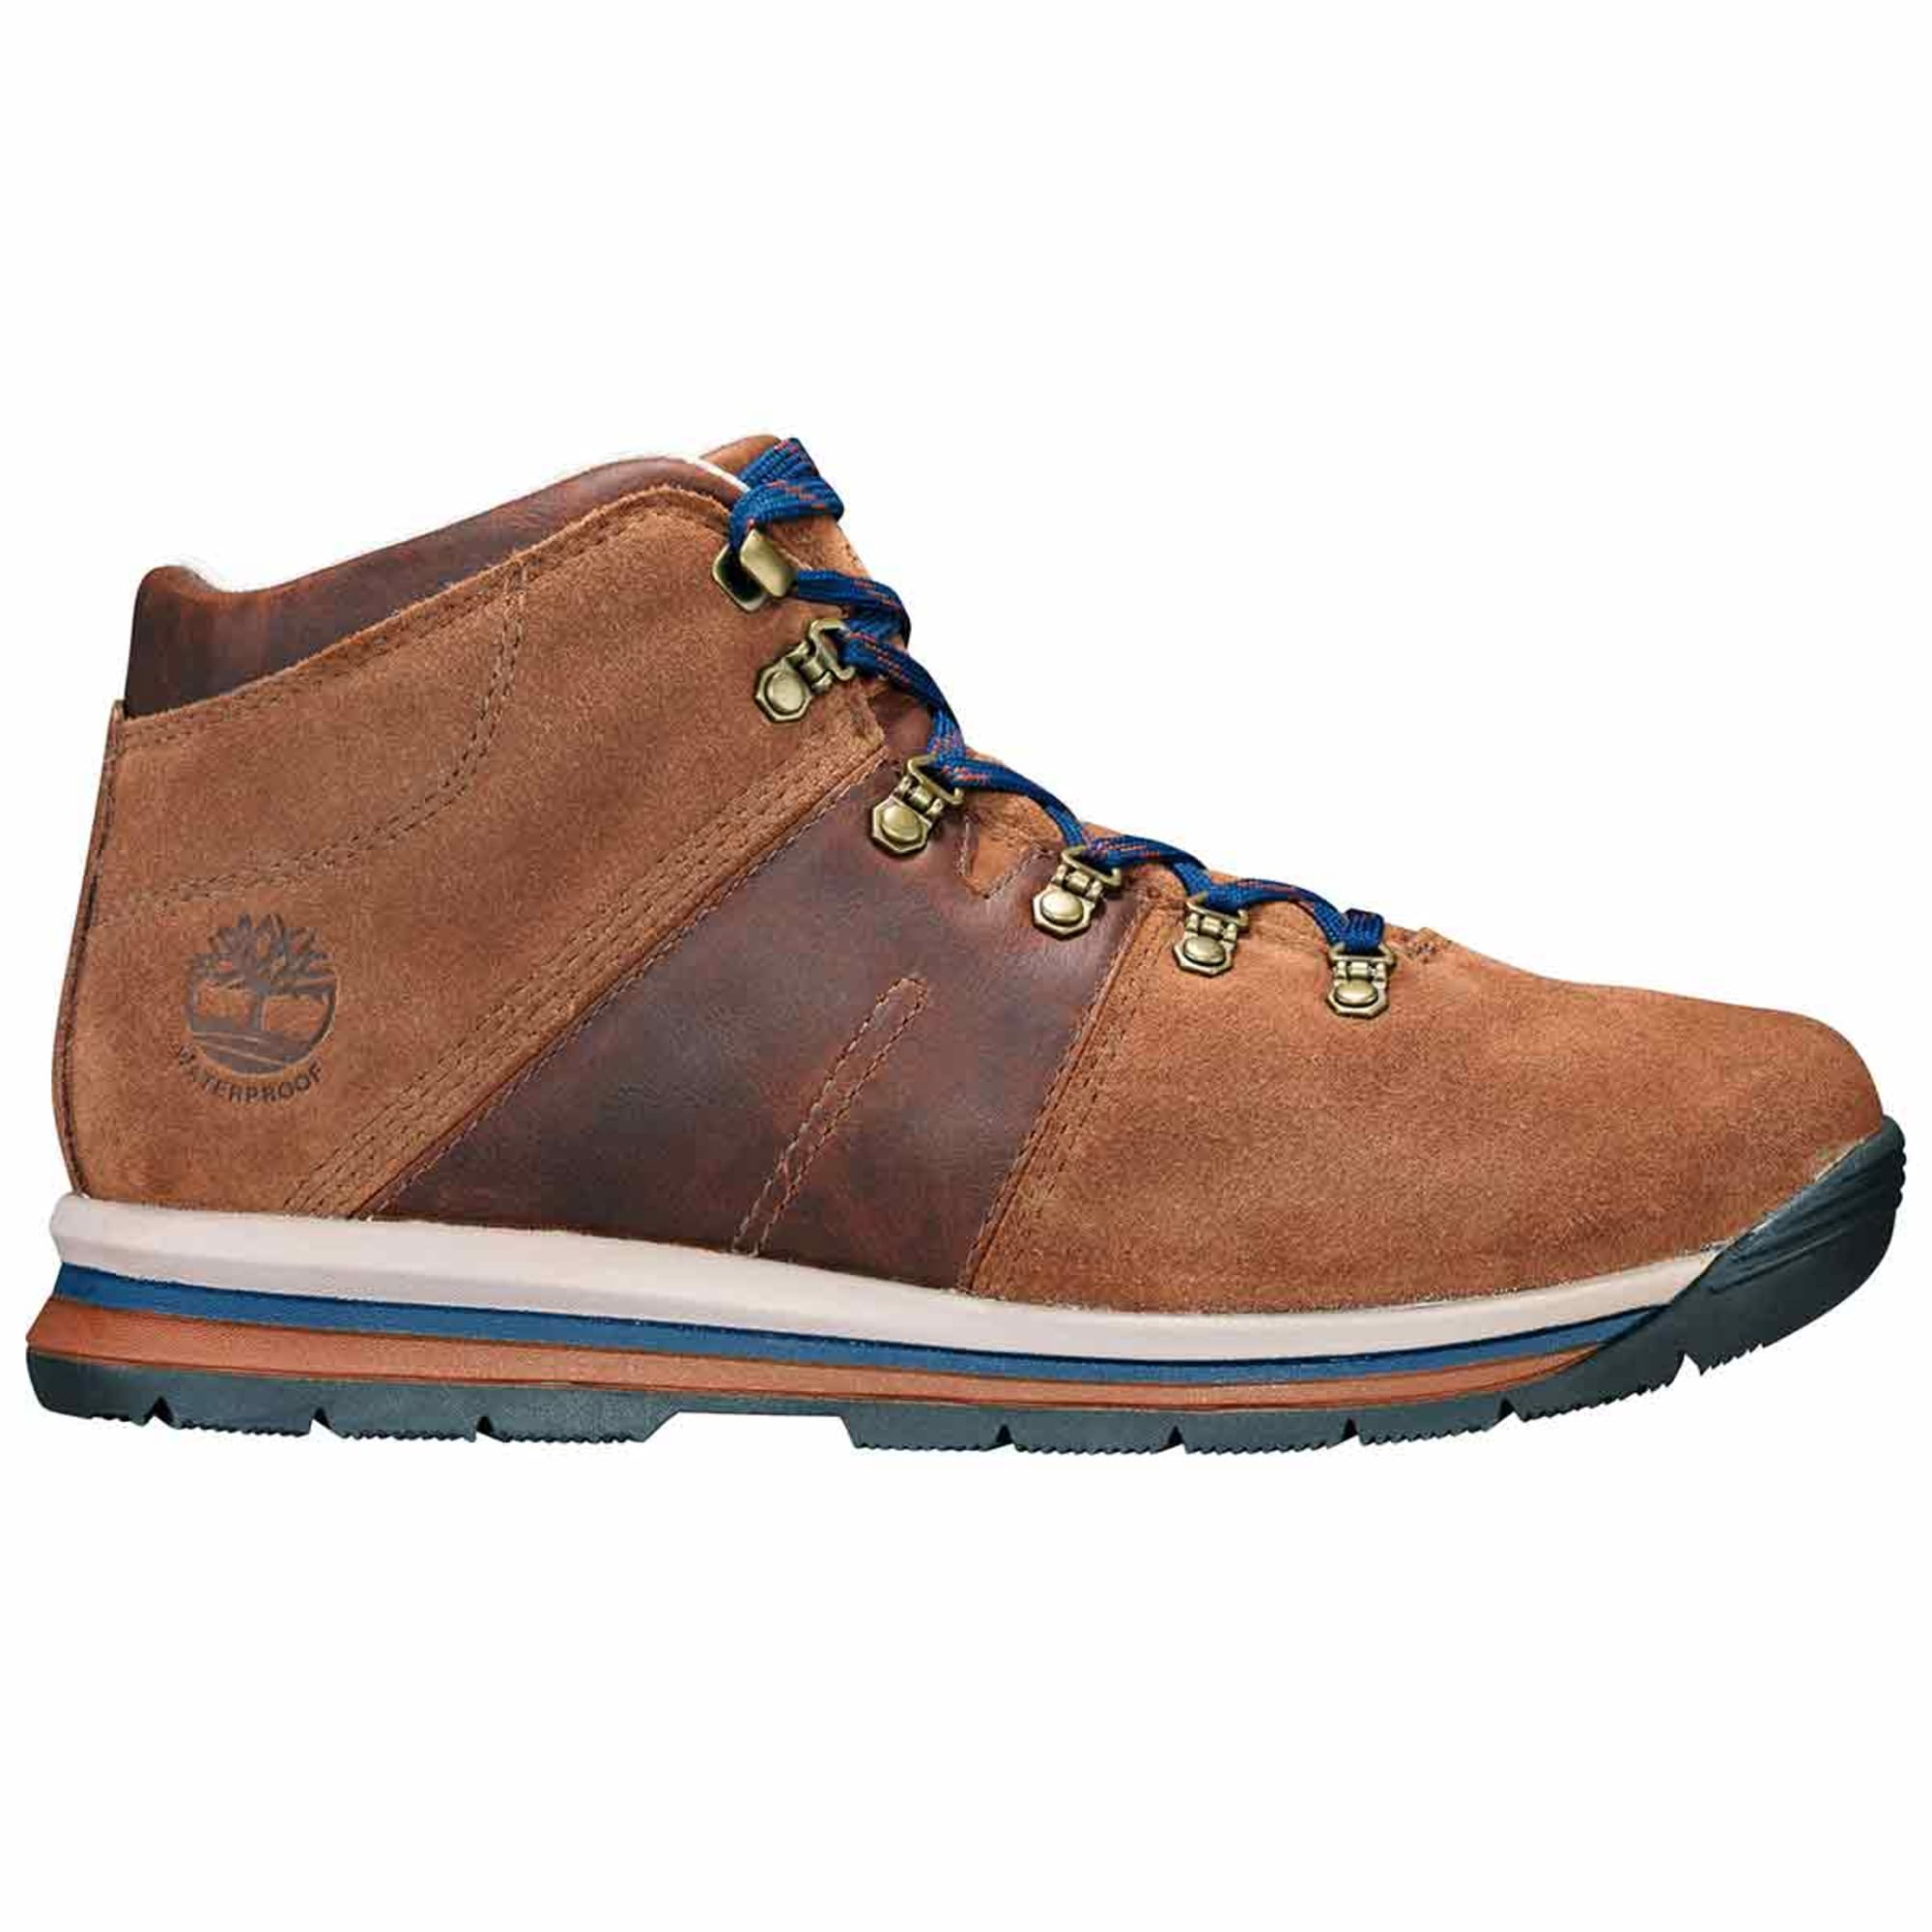 GT Rally Mid Waterproof Hiking Boots